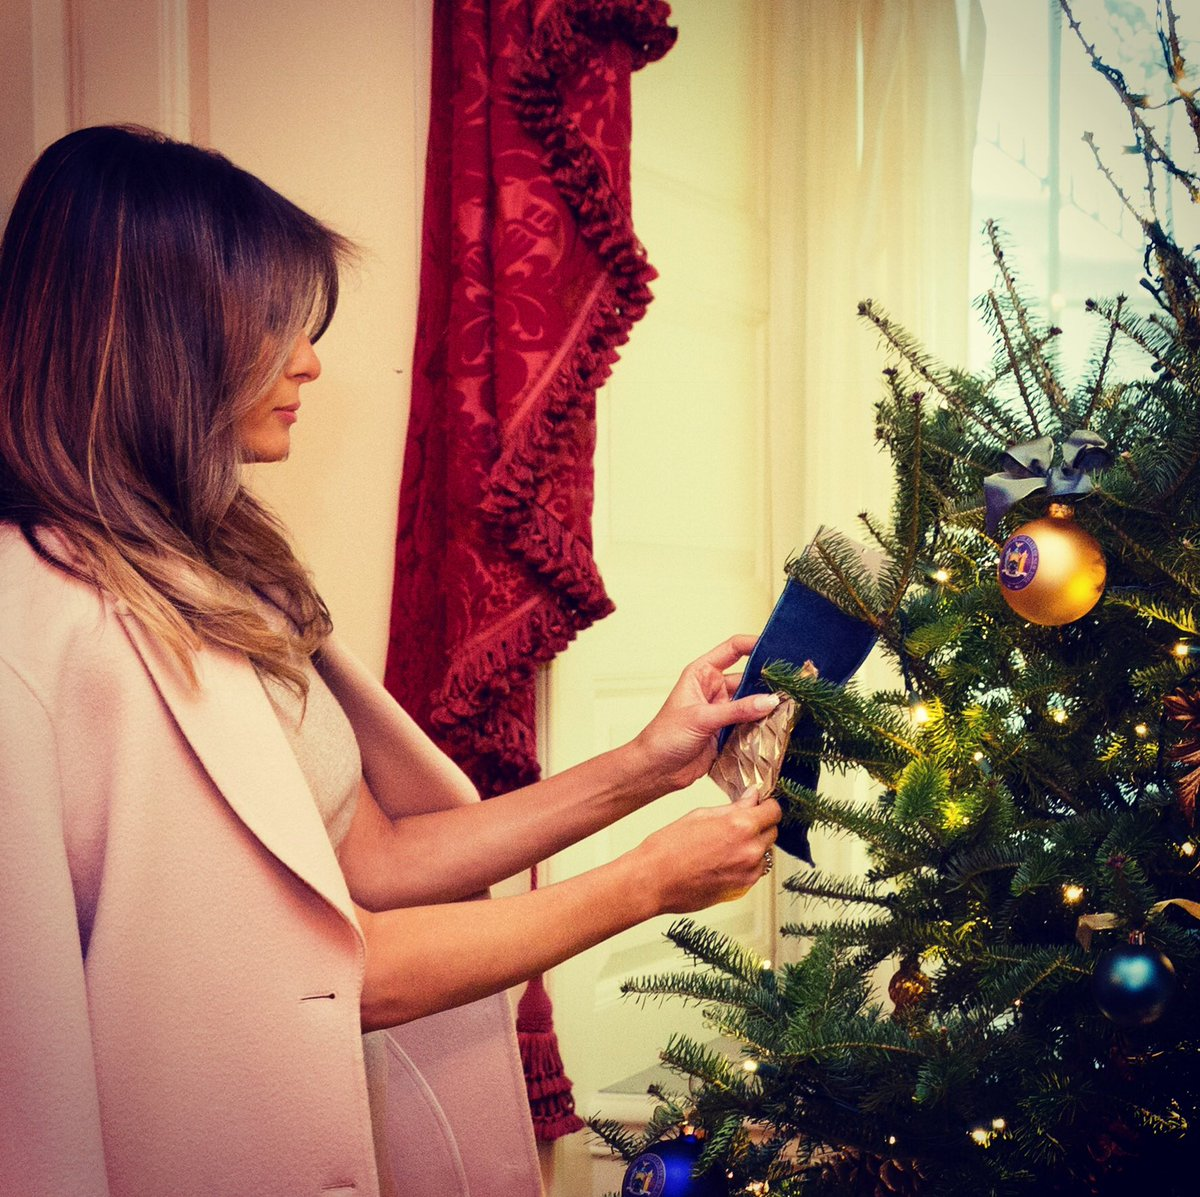 RT @FLOTUS: Preparations are underway to celebrate the holidays at the @WhiteHouse! https://t.co/N5qZ1NP8ez